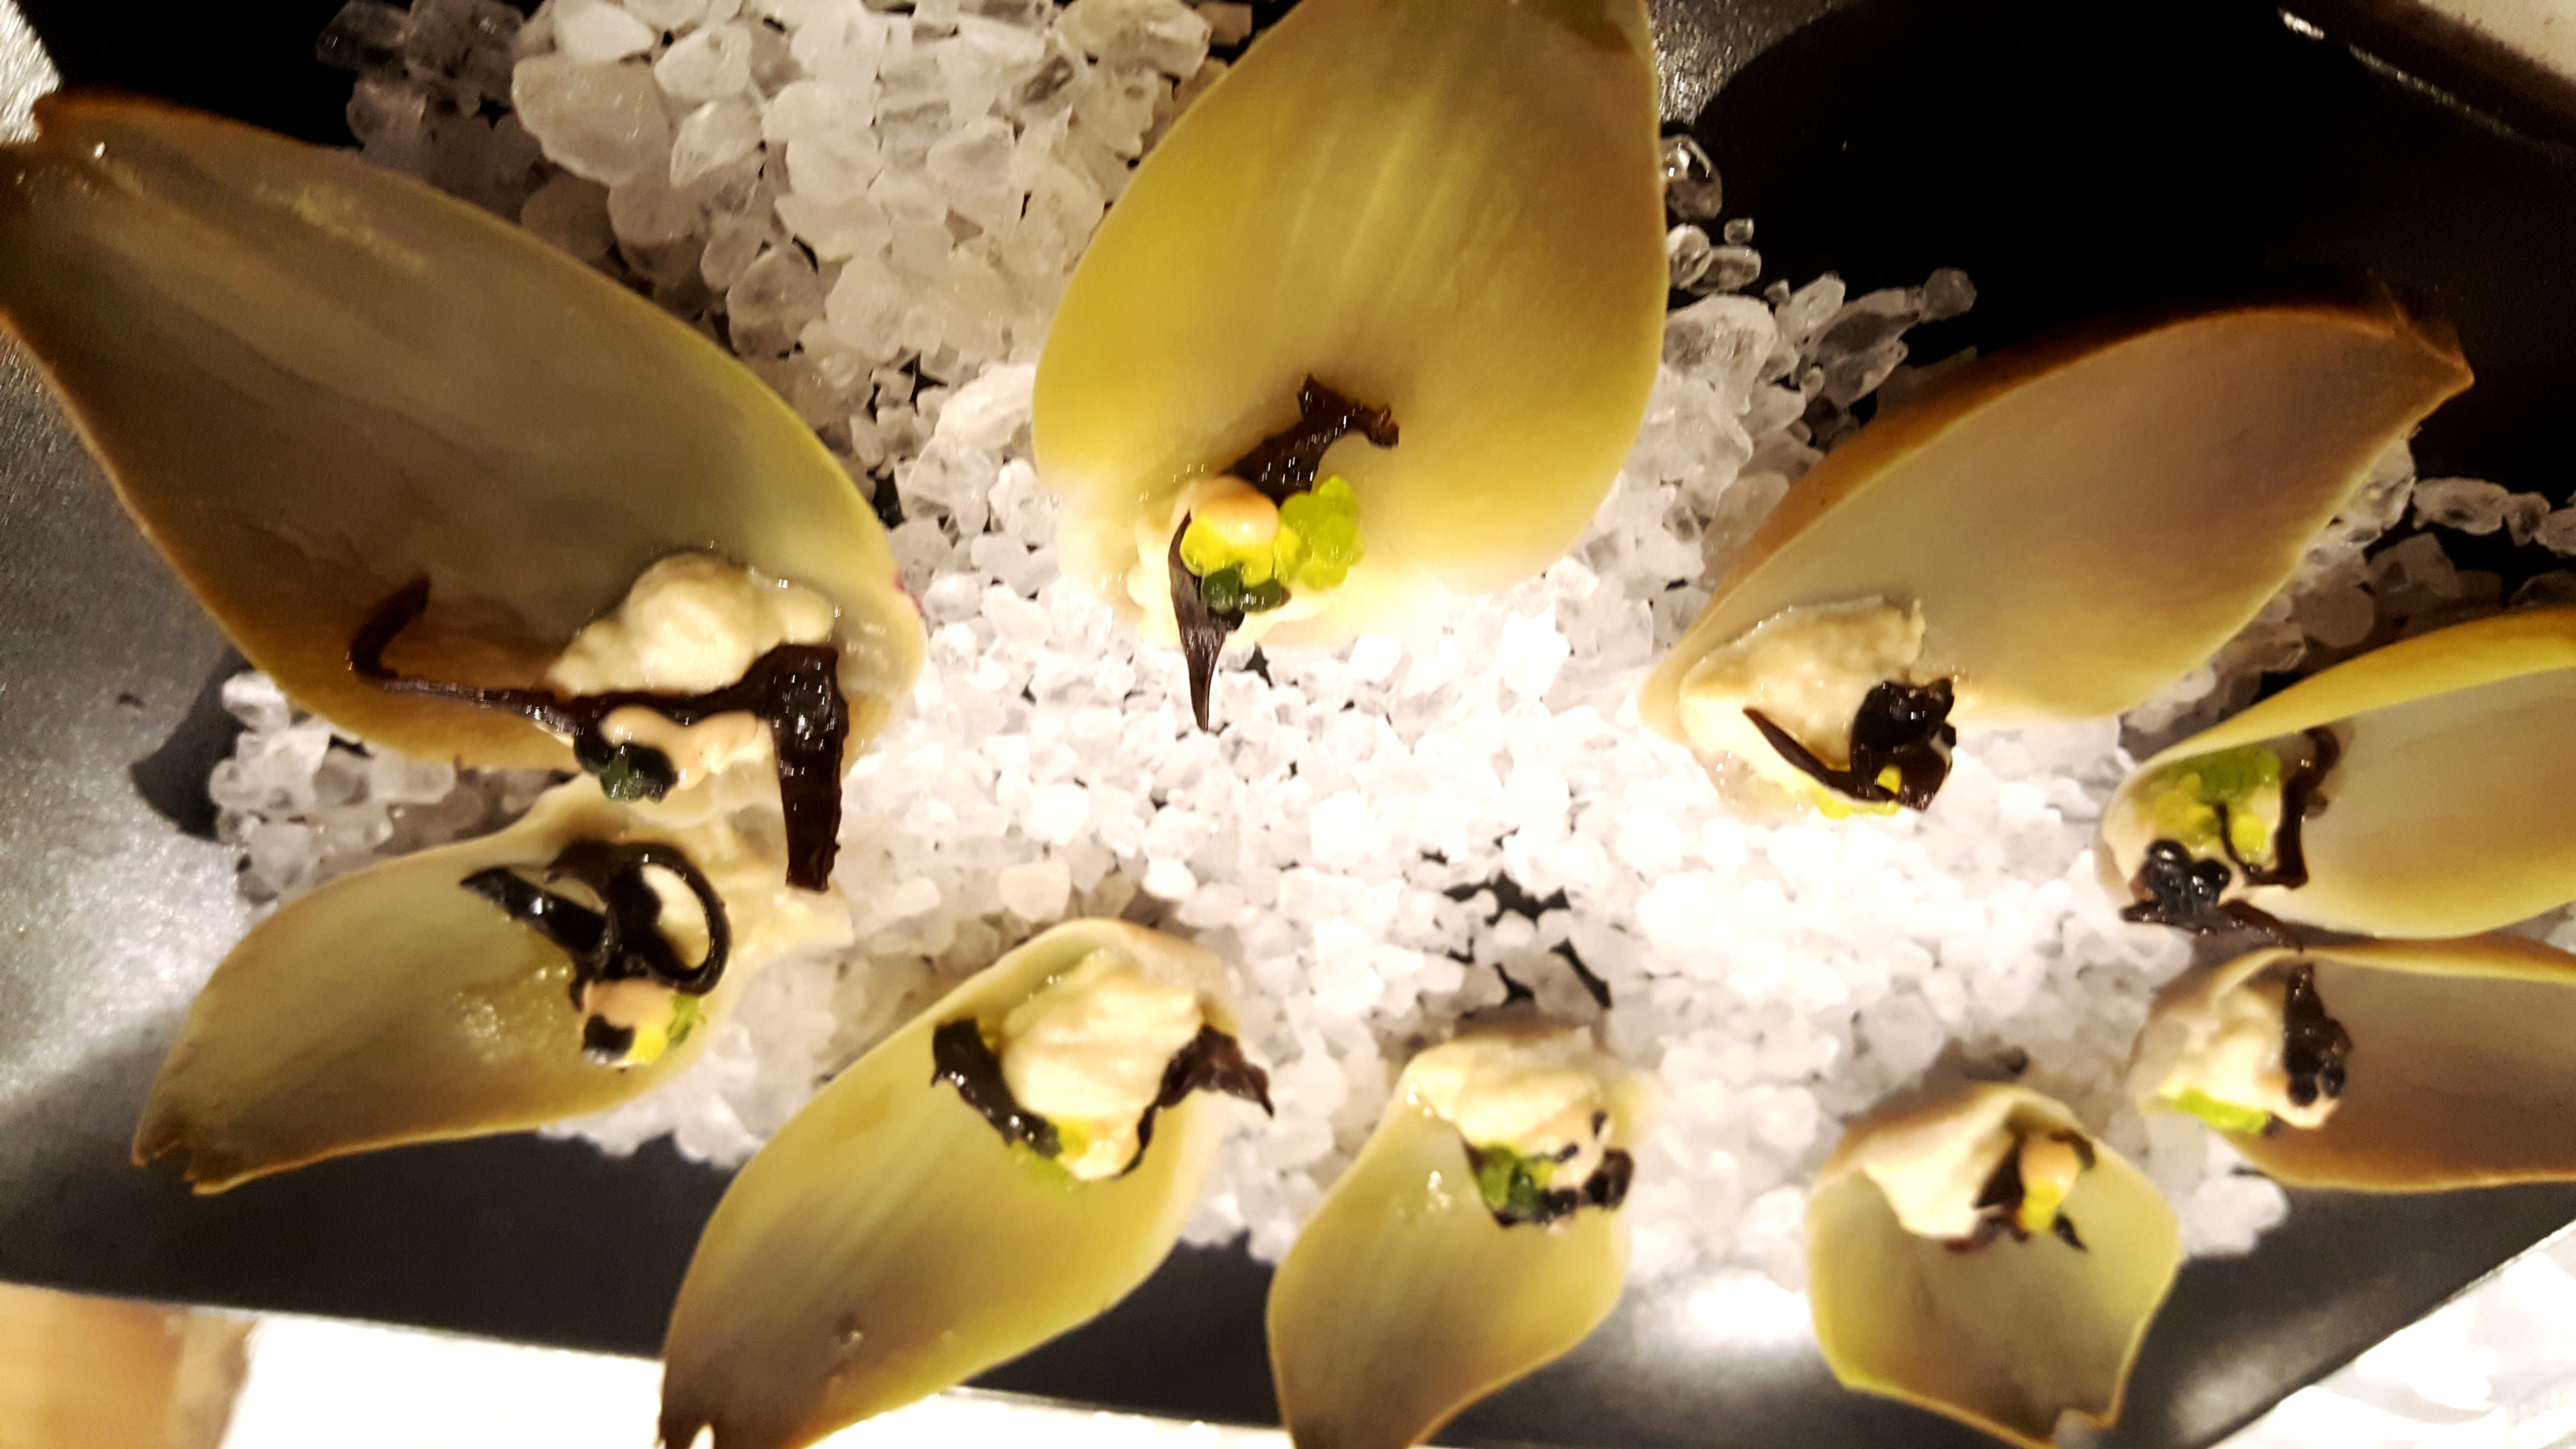 Vegan Artichoke Oysters with Wasabi